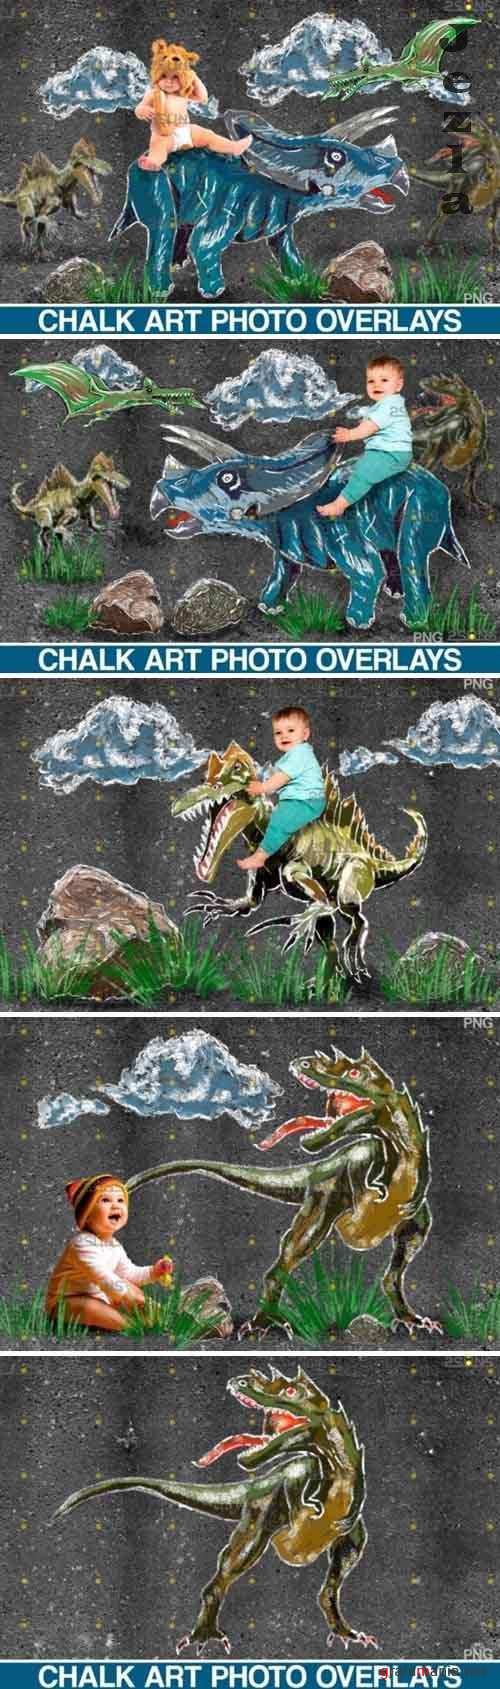 Dinosaurs Chalk art overlays, Dinosaur backdrop - 649347